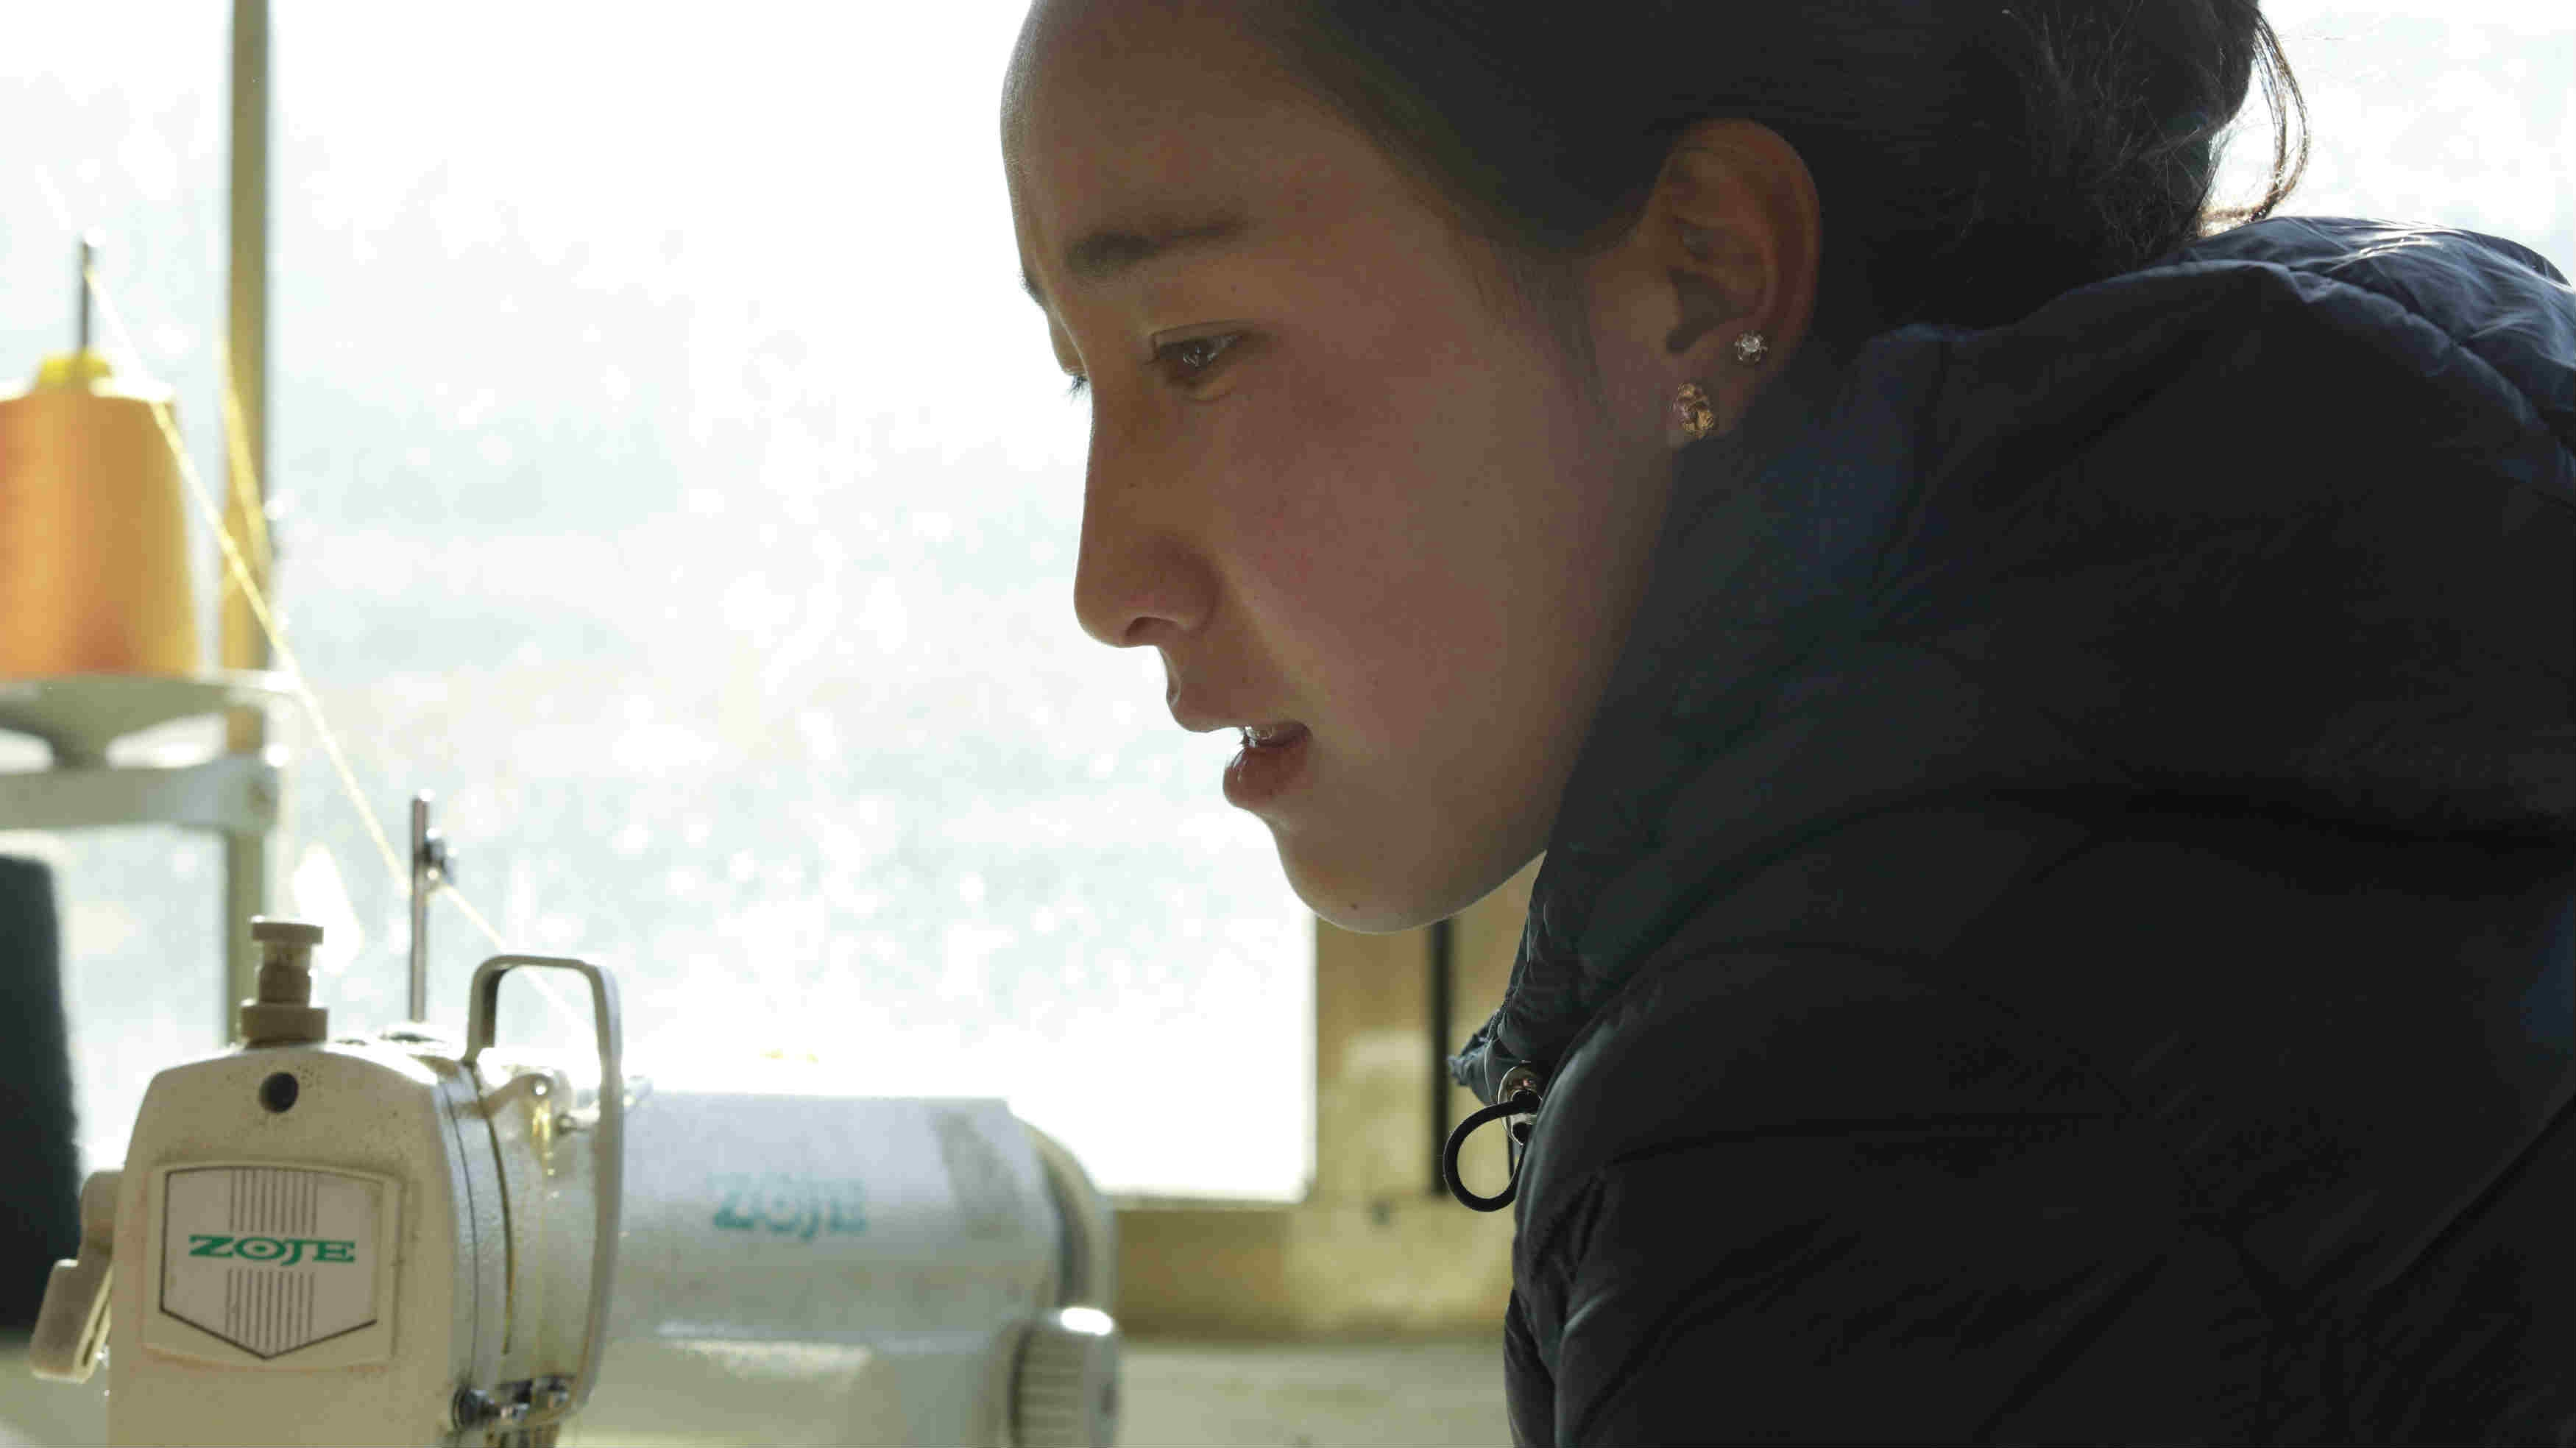 Poverty relief in Tibet (episode 2): From housewife to craftswoman